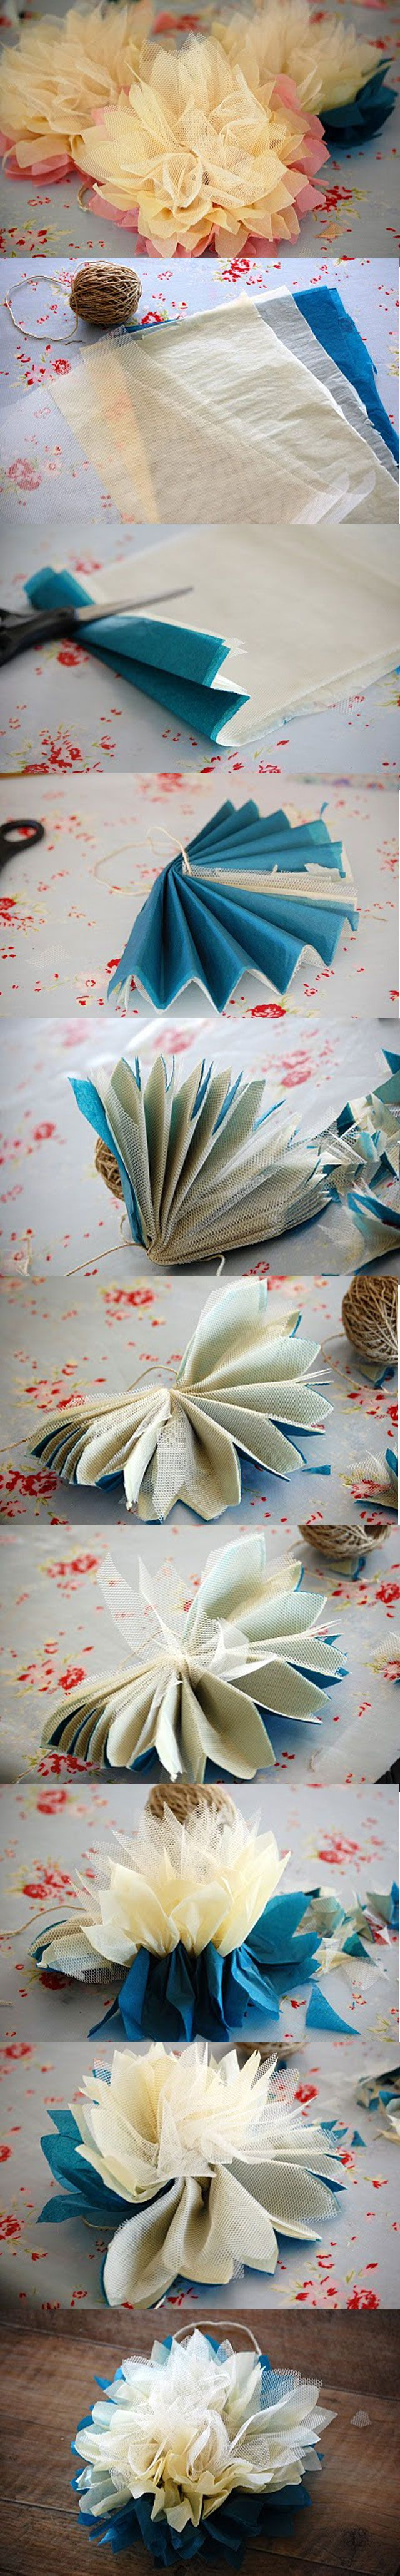 DIY: 5 Great Floral Accessories Picture Tutorials ~    @: http://www.fashiondivadesign.com/diy-make-floral-accessories-be-ready-for-spring/